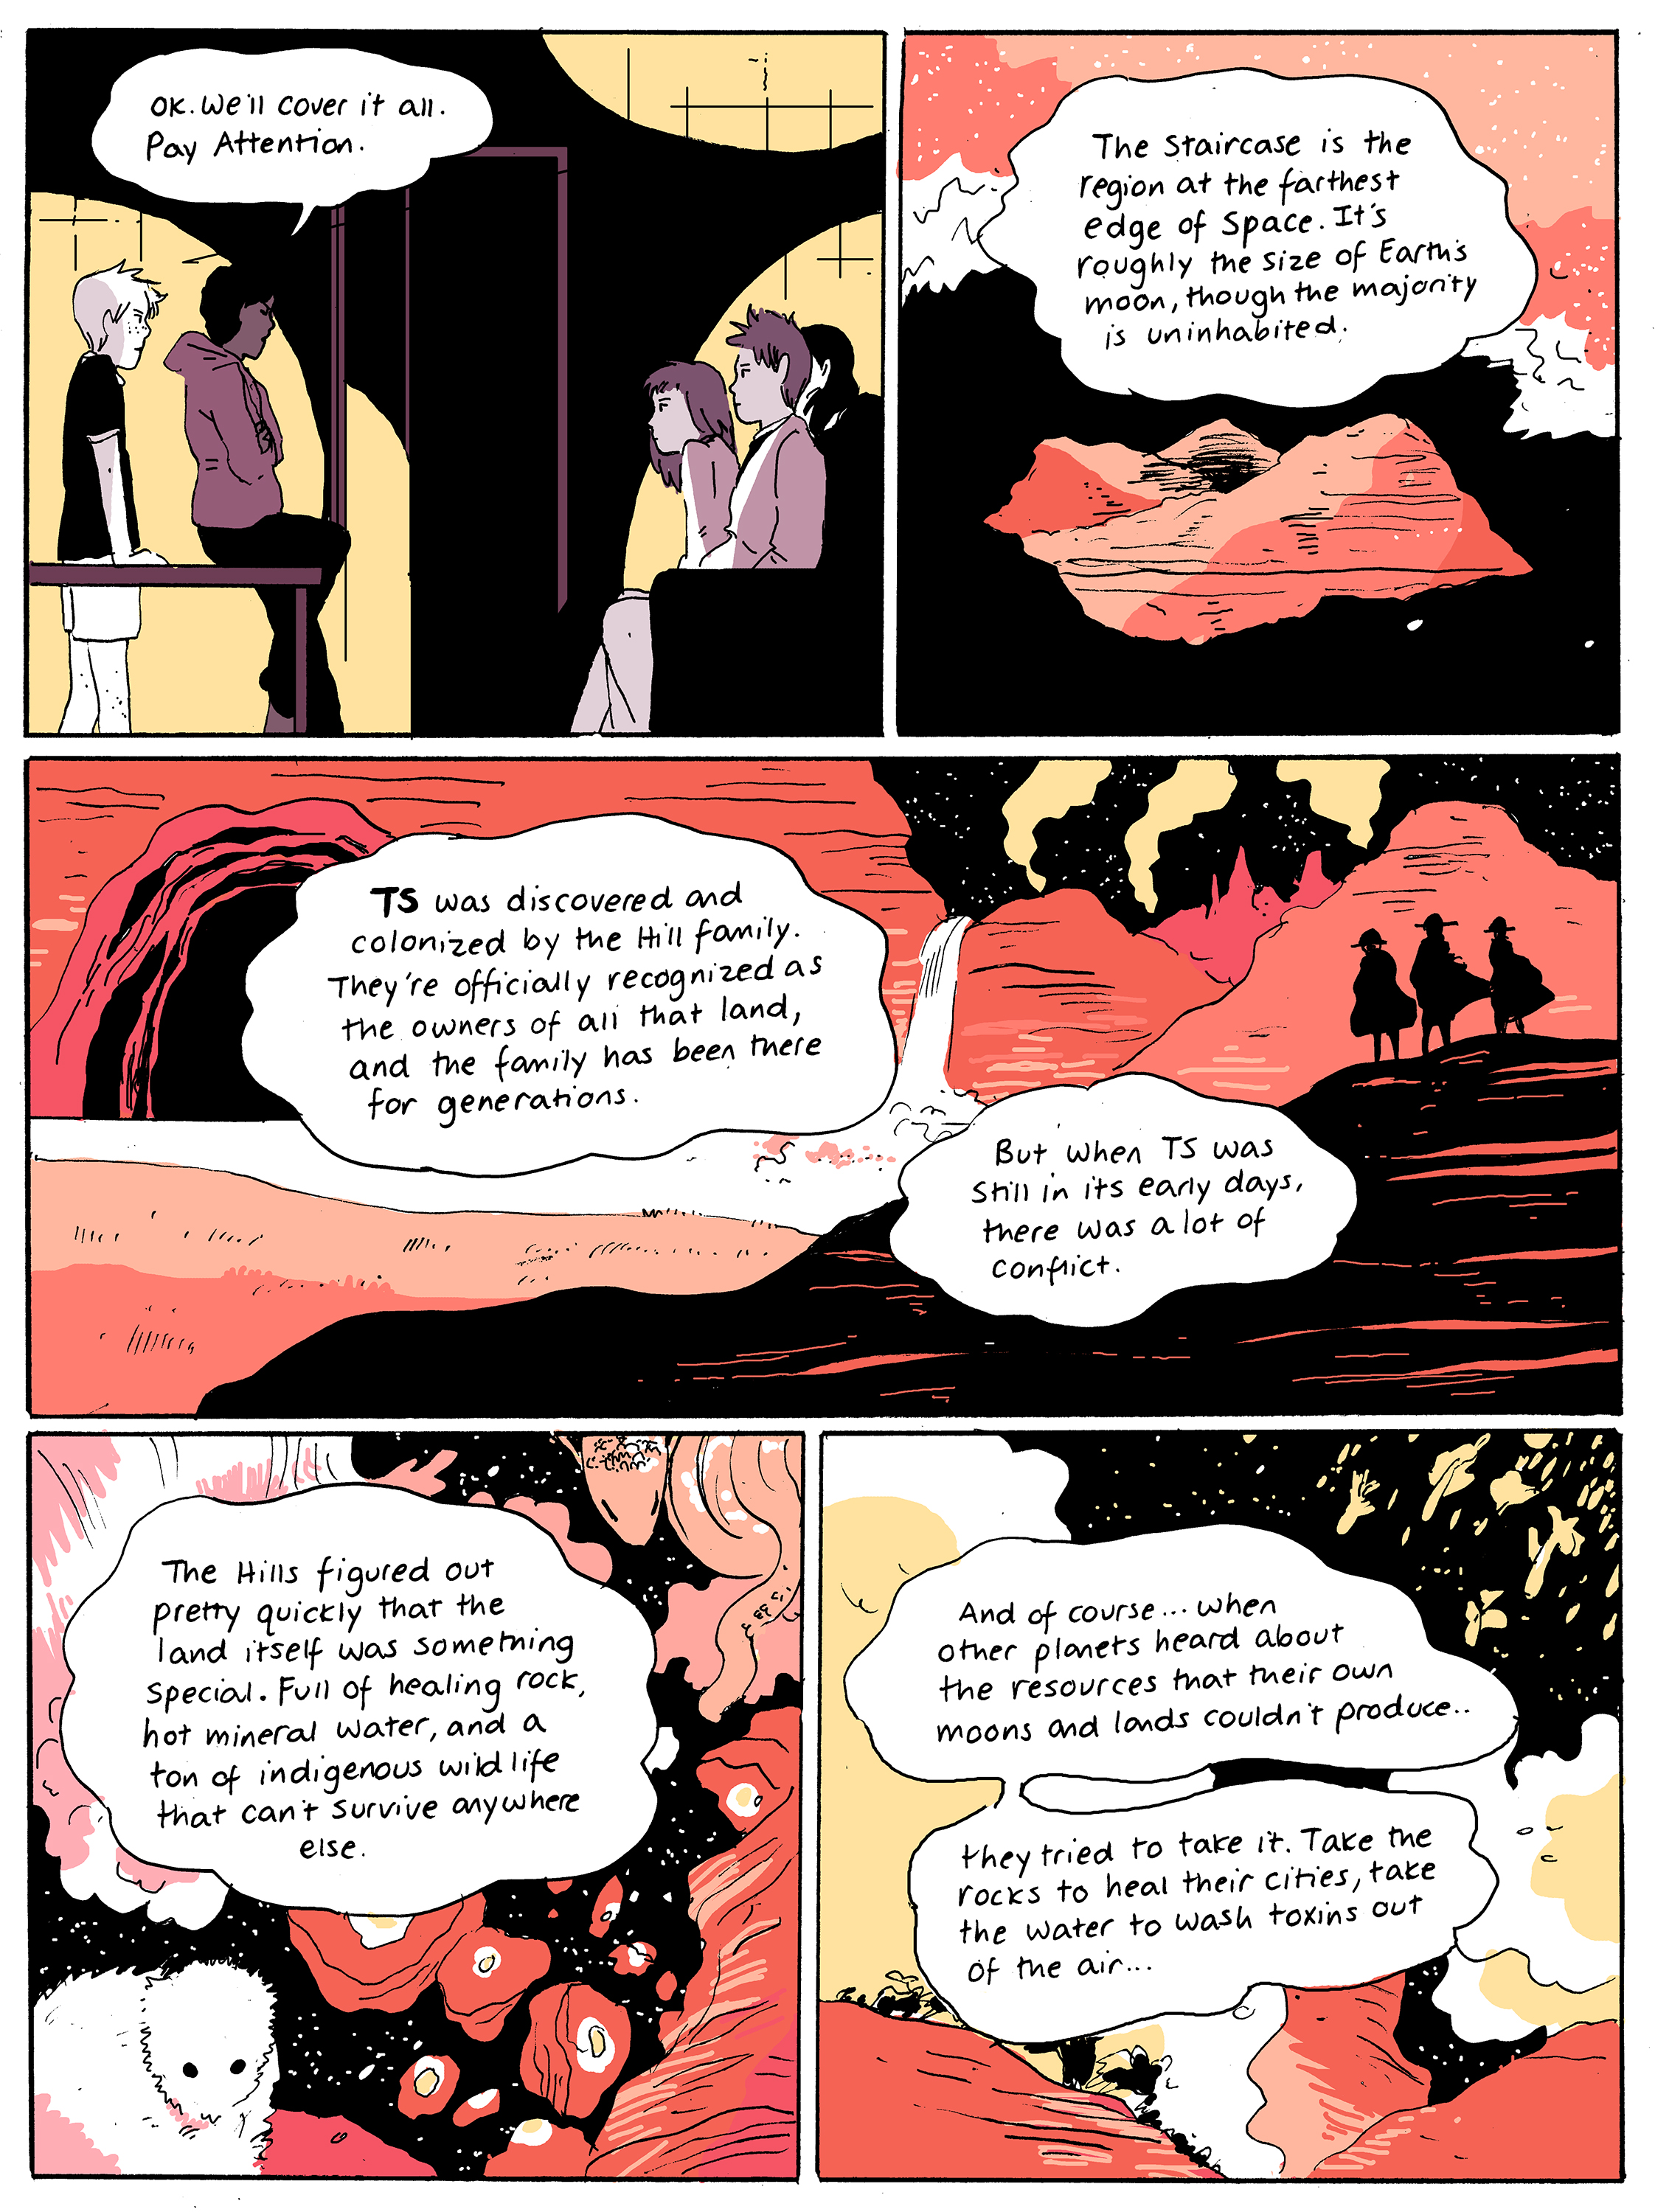 chapter14_page08.jpg